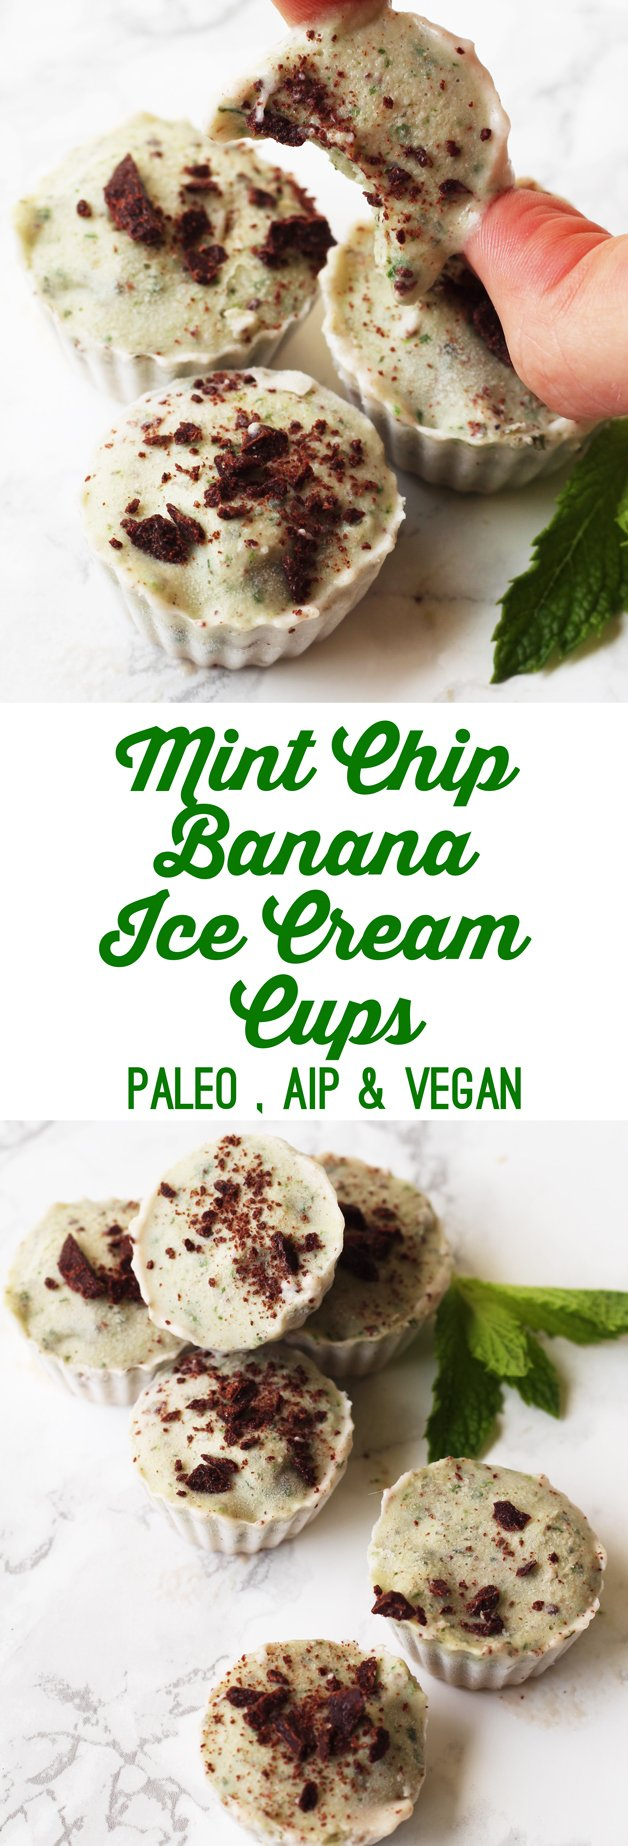 Mint Chip Banana Ice Cream Cups (Paleo, AIP, Vegan)